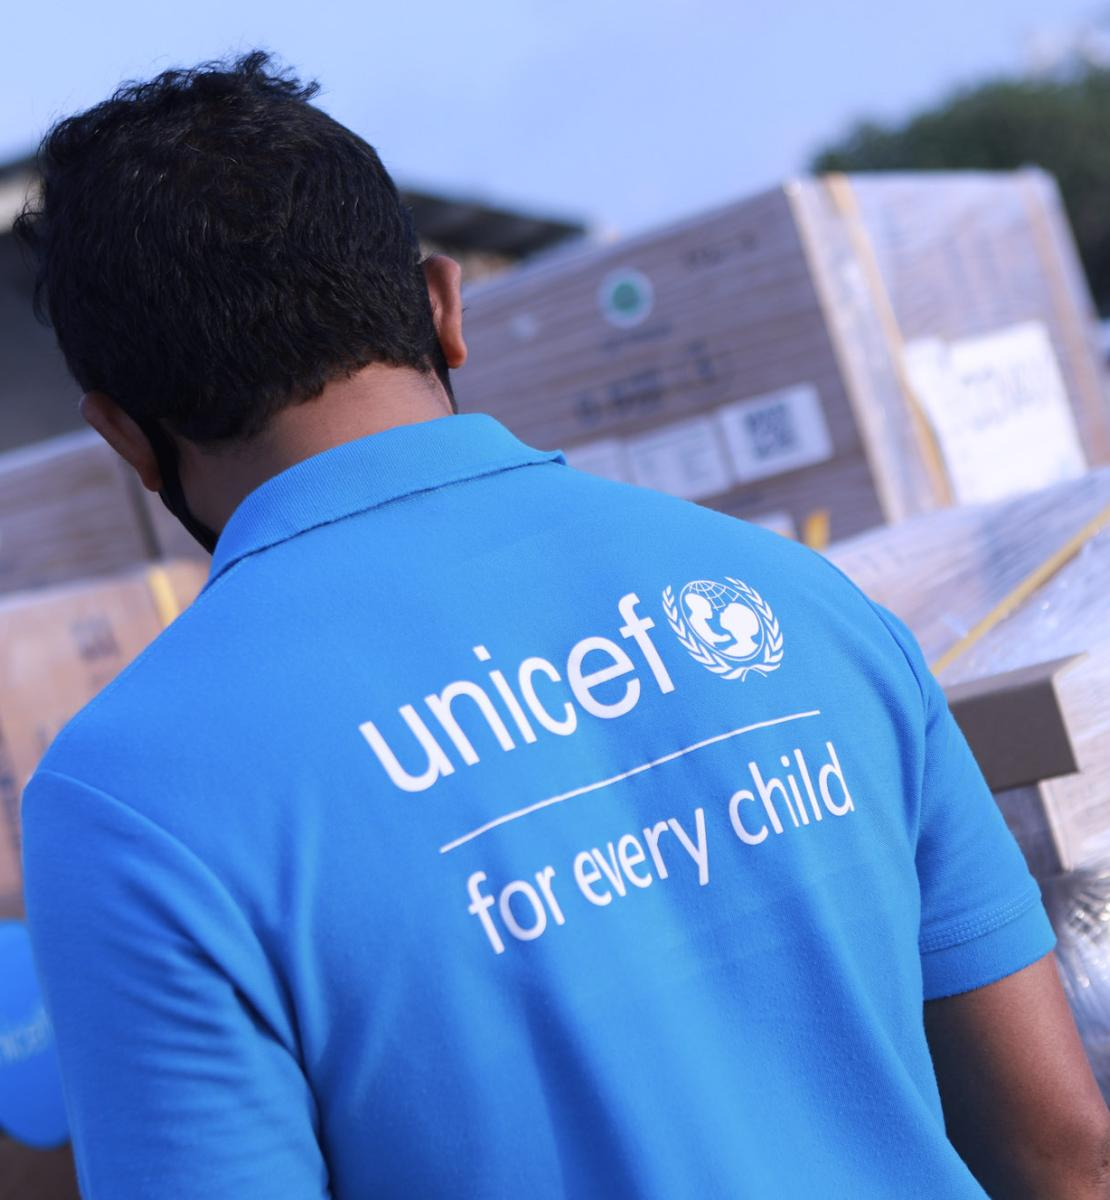 A man wearing a light blue UNICEF shirt looks over the delivery of vaccines wrapped in wrapping paper.